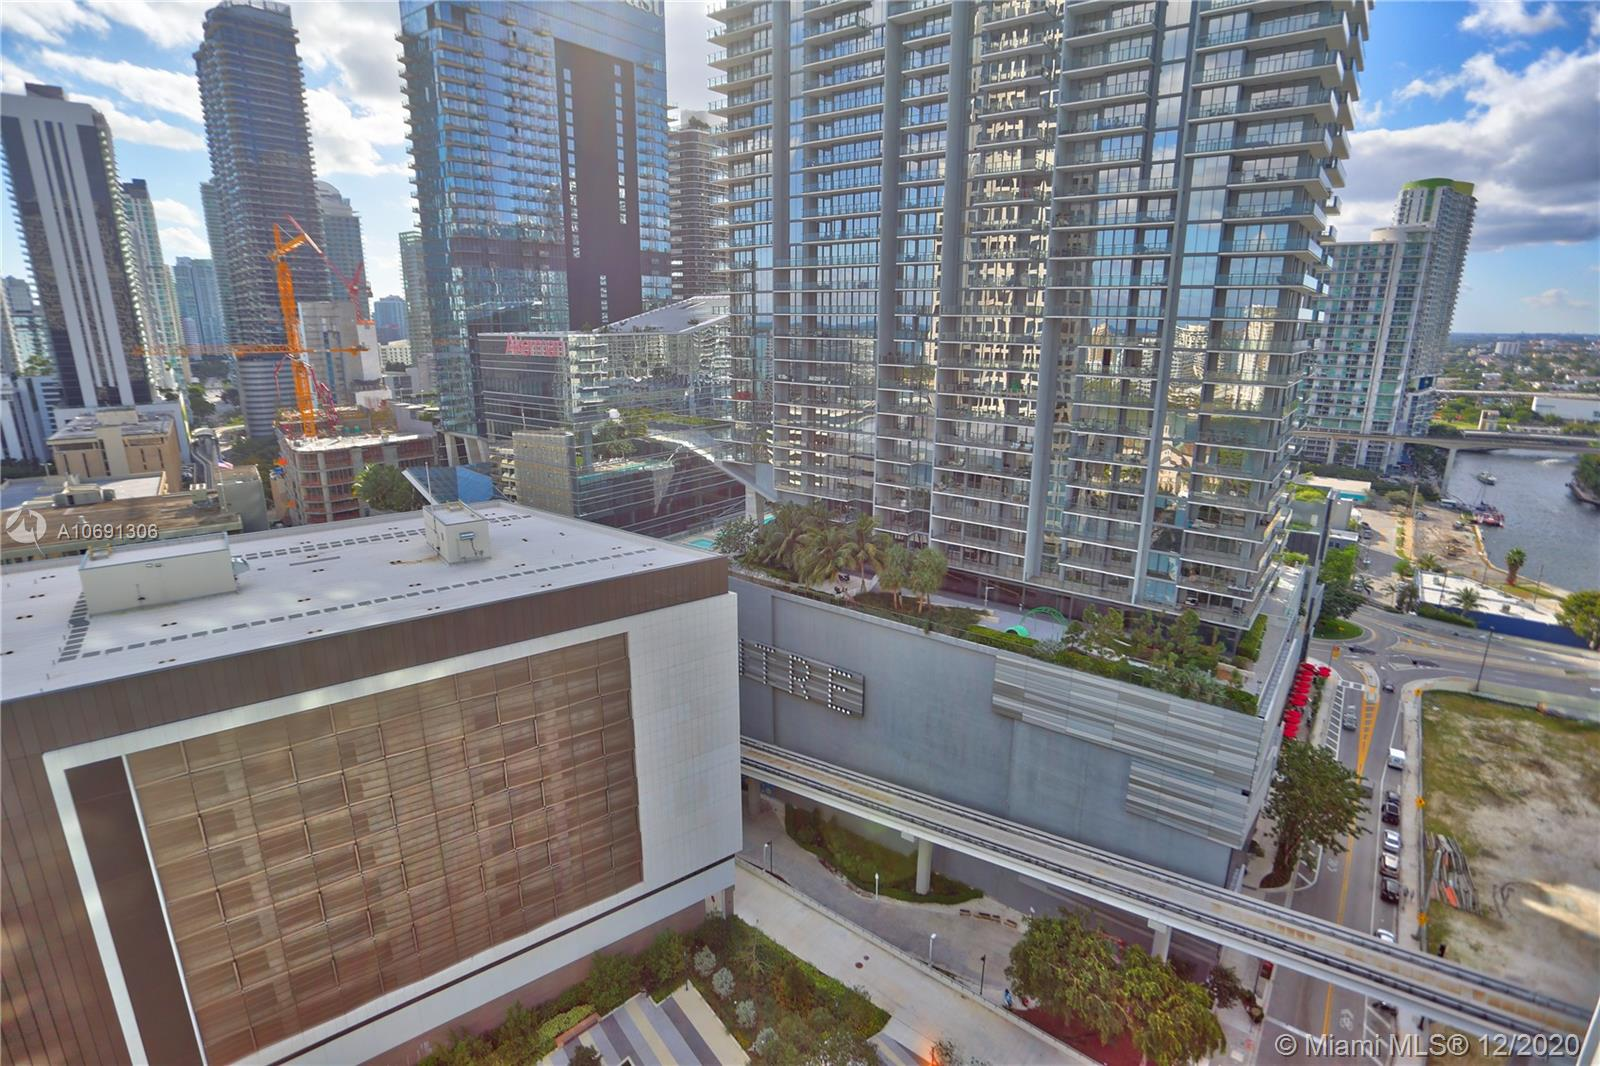 500 Brickell East Tower #2304 - 55 SE 6th St #2304, Miami, FL 33131